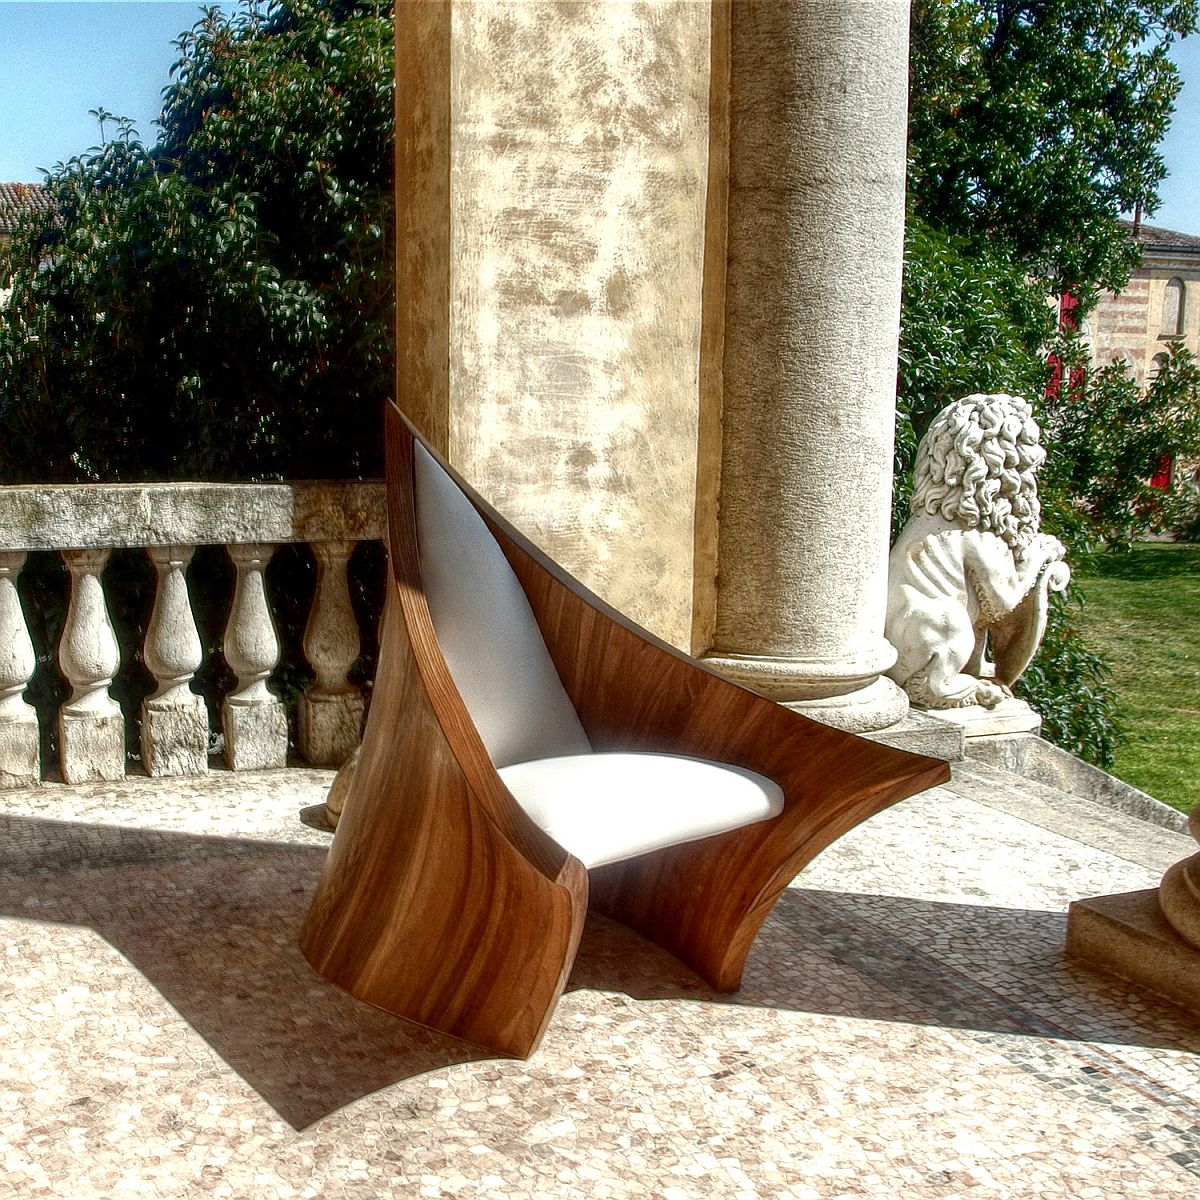 Combining ancient and modern design with the sculptural New Medieval Armchair